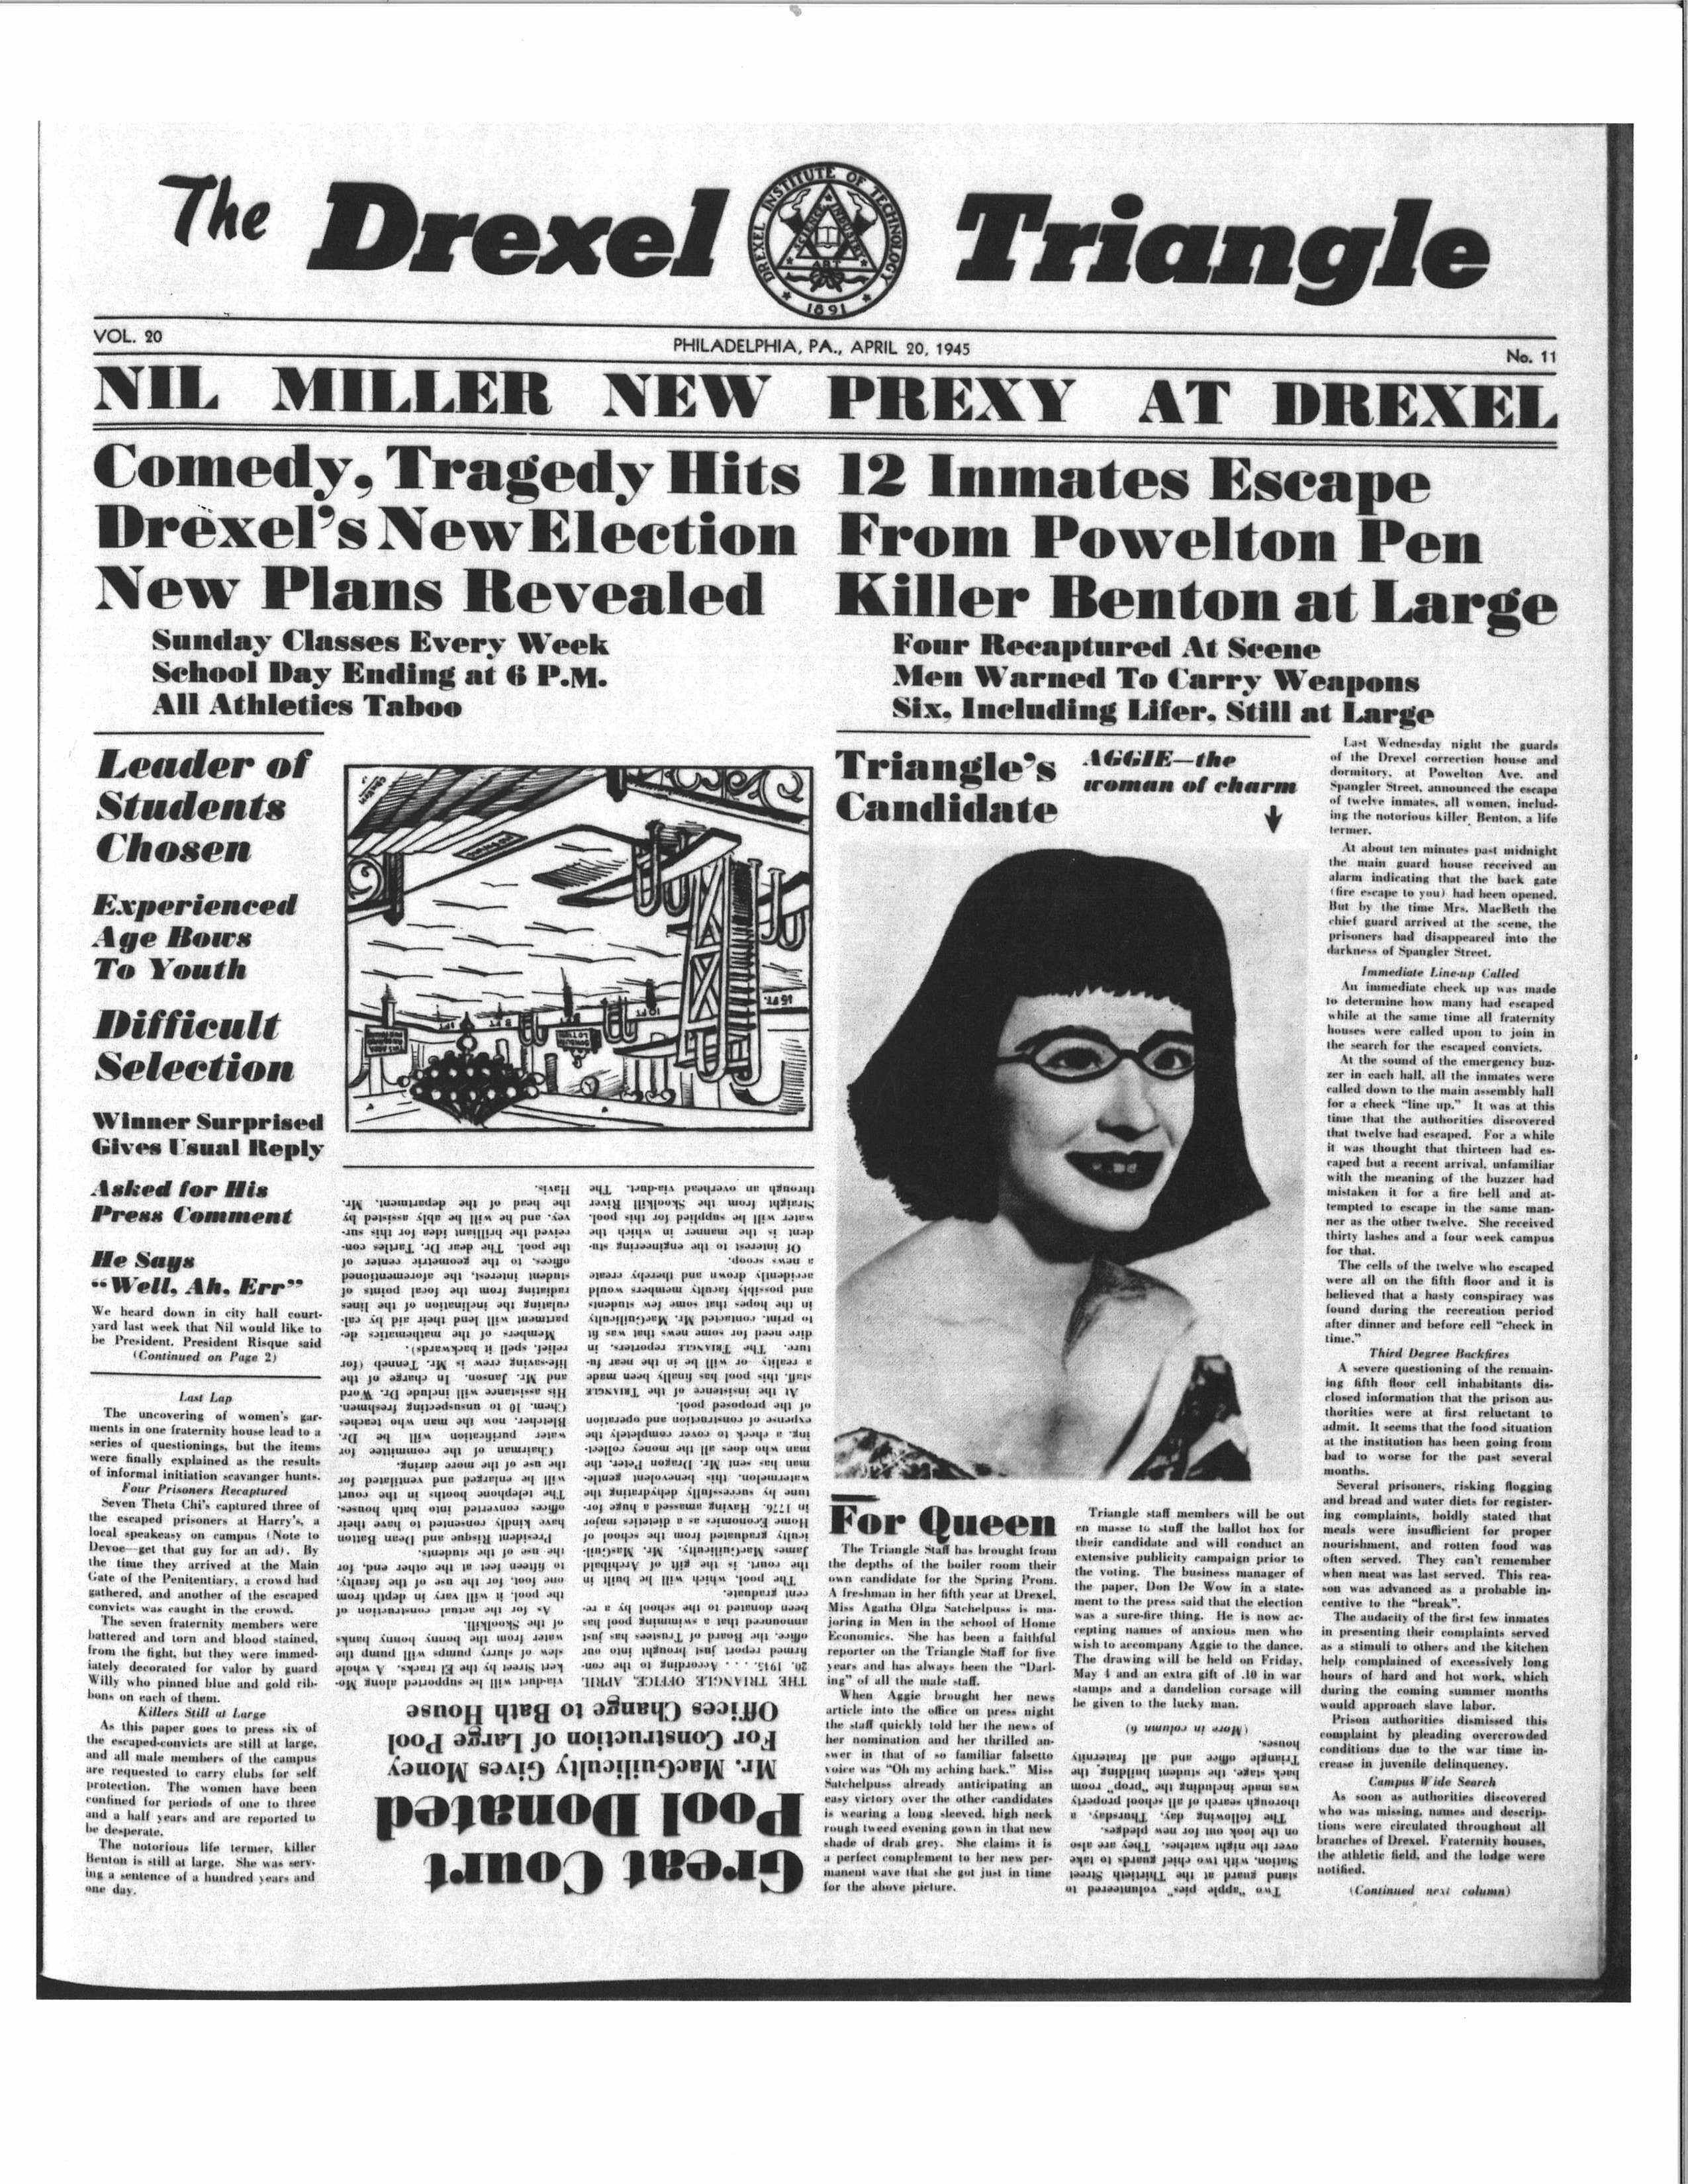 The front page of The Triangle's 1945 joke issue.